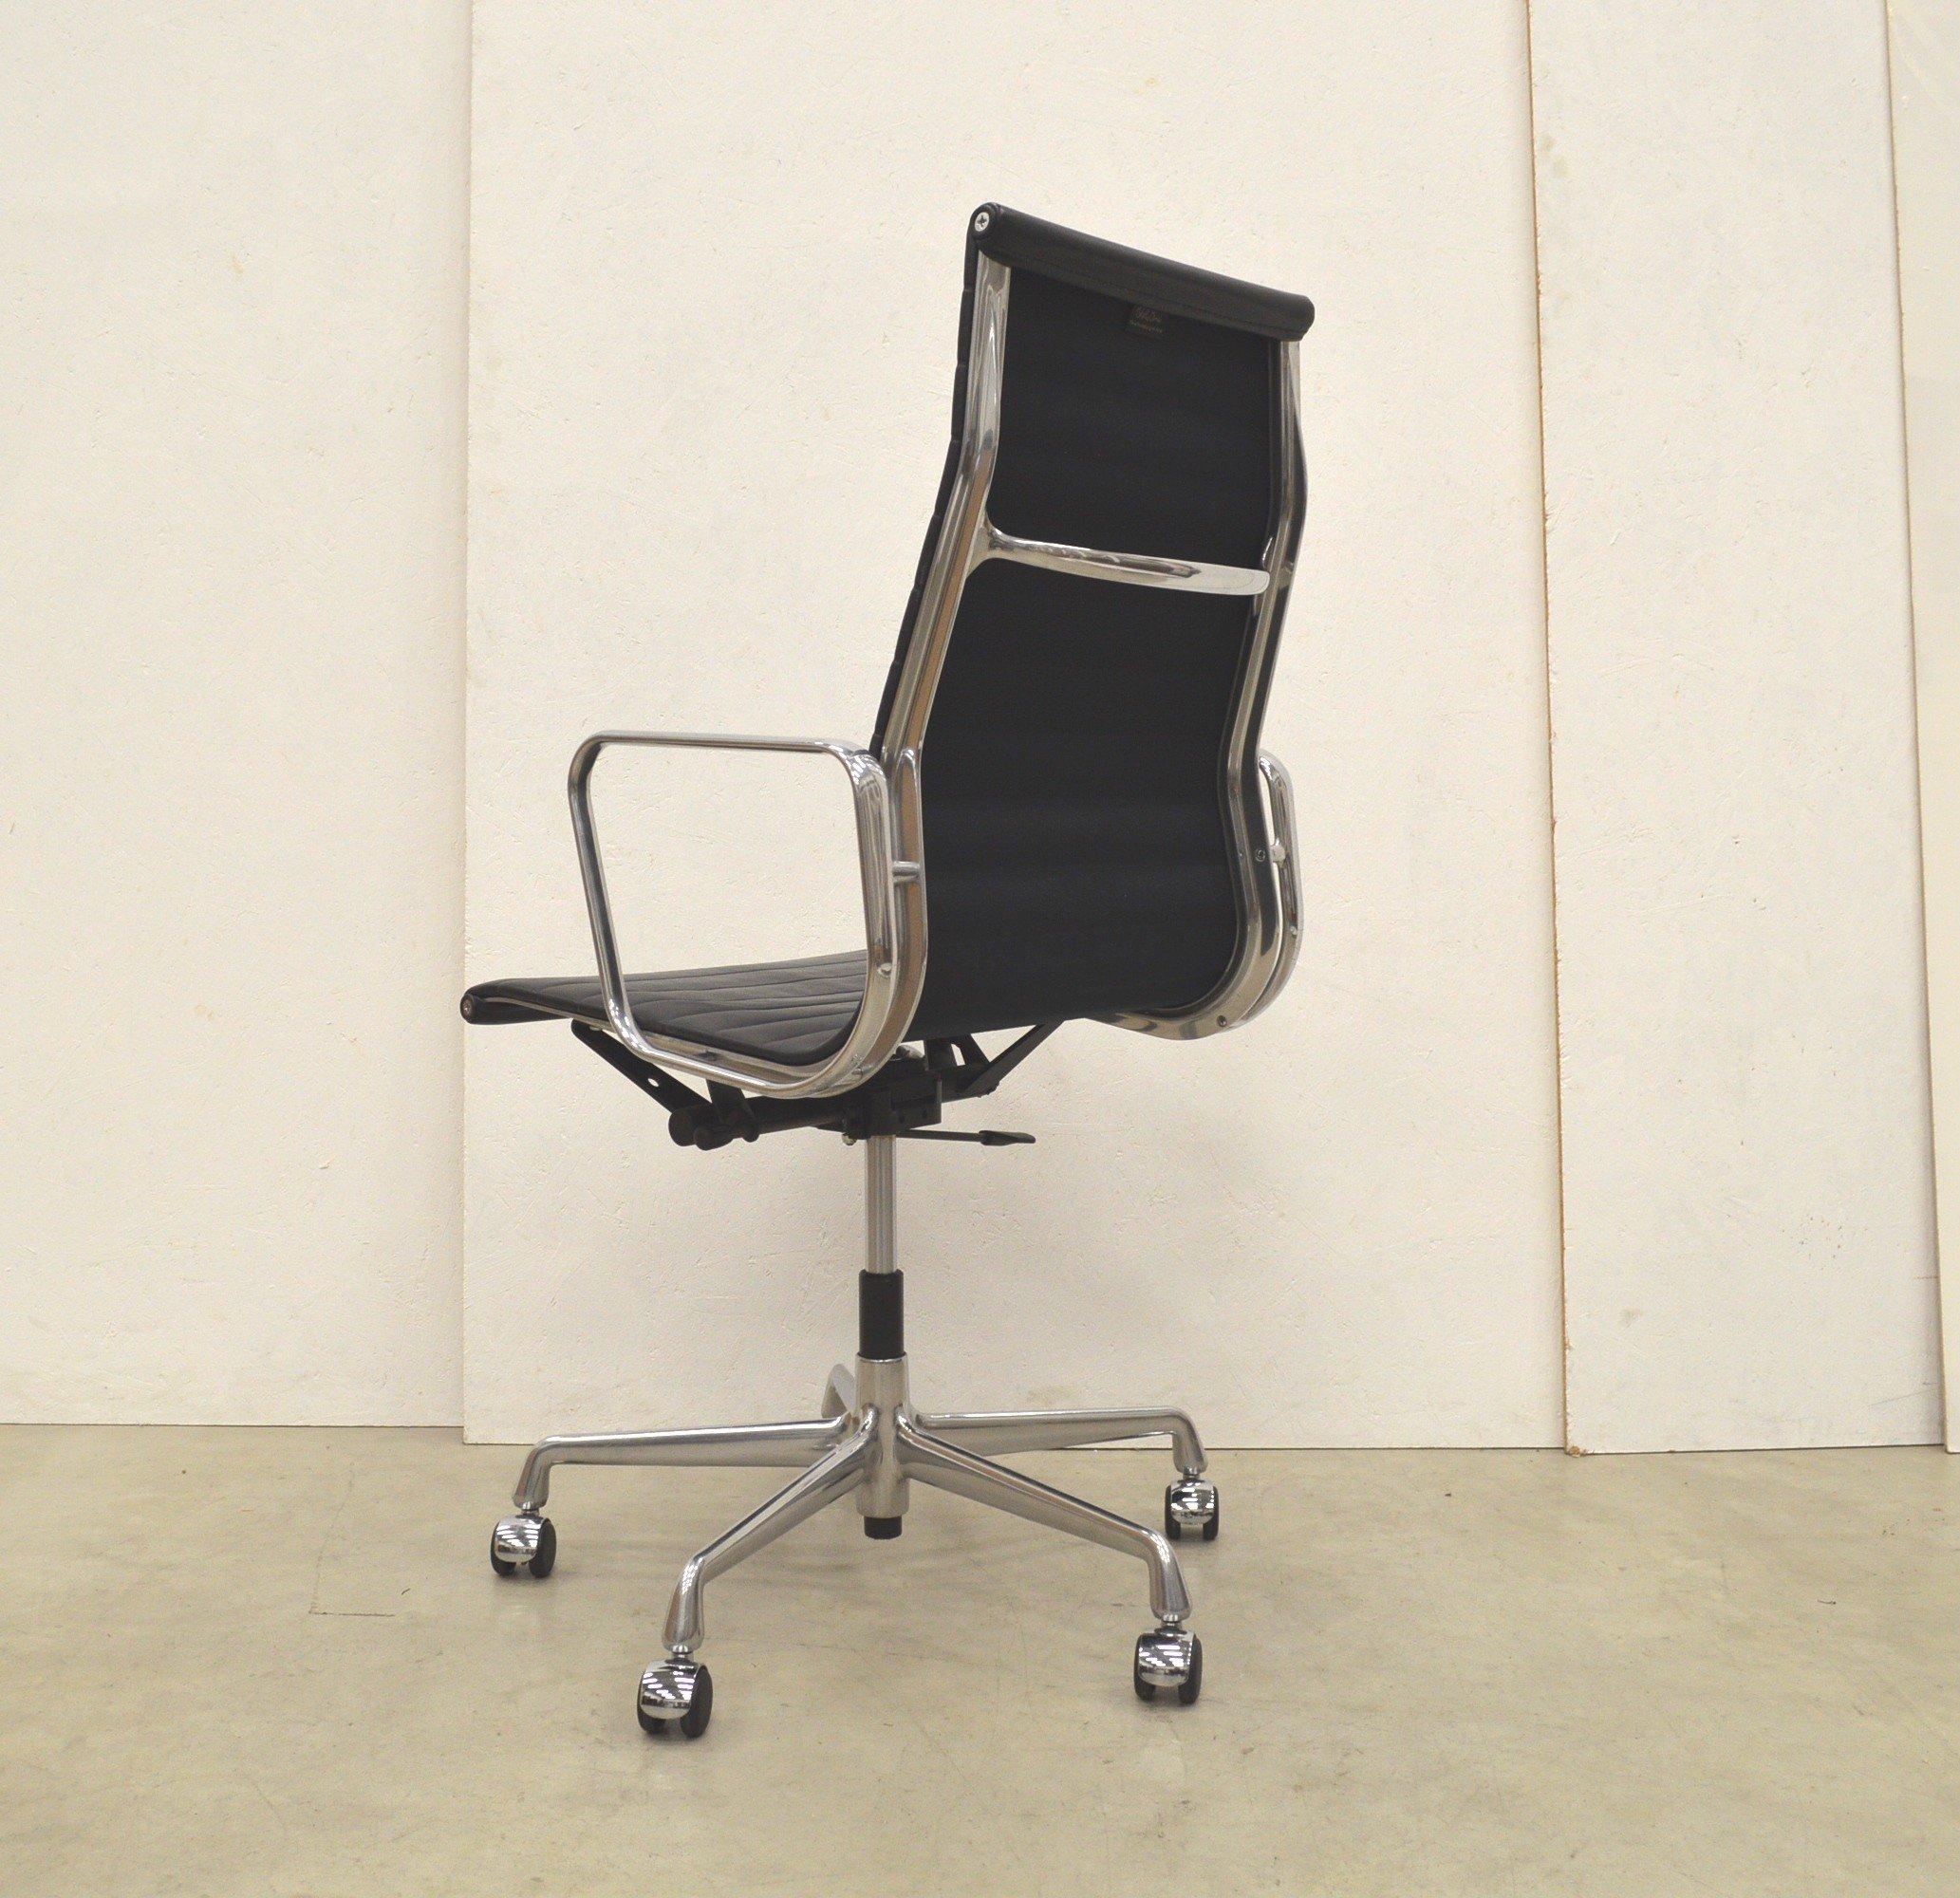 vitra ea119 alu office chair by charles ray eames. Black Bedroom Furniture Sets. Home Design Ideas